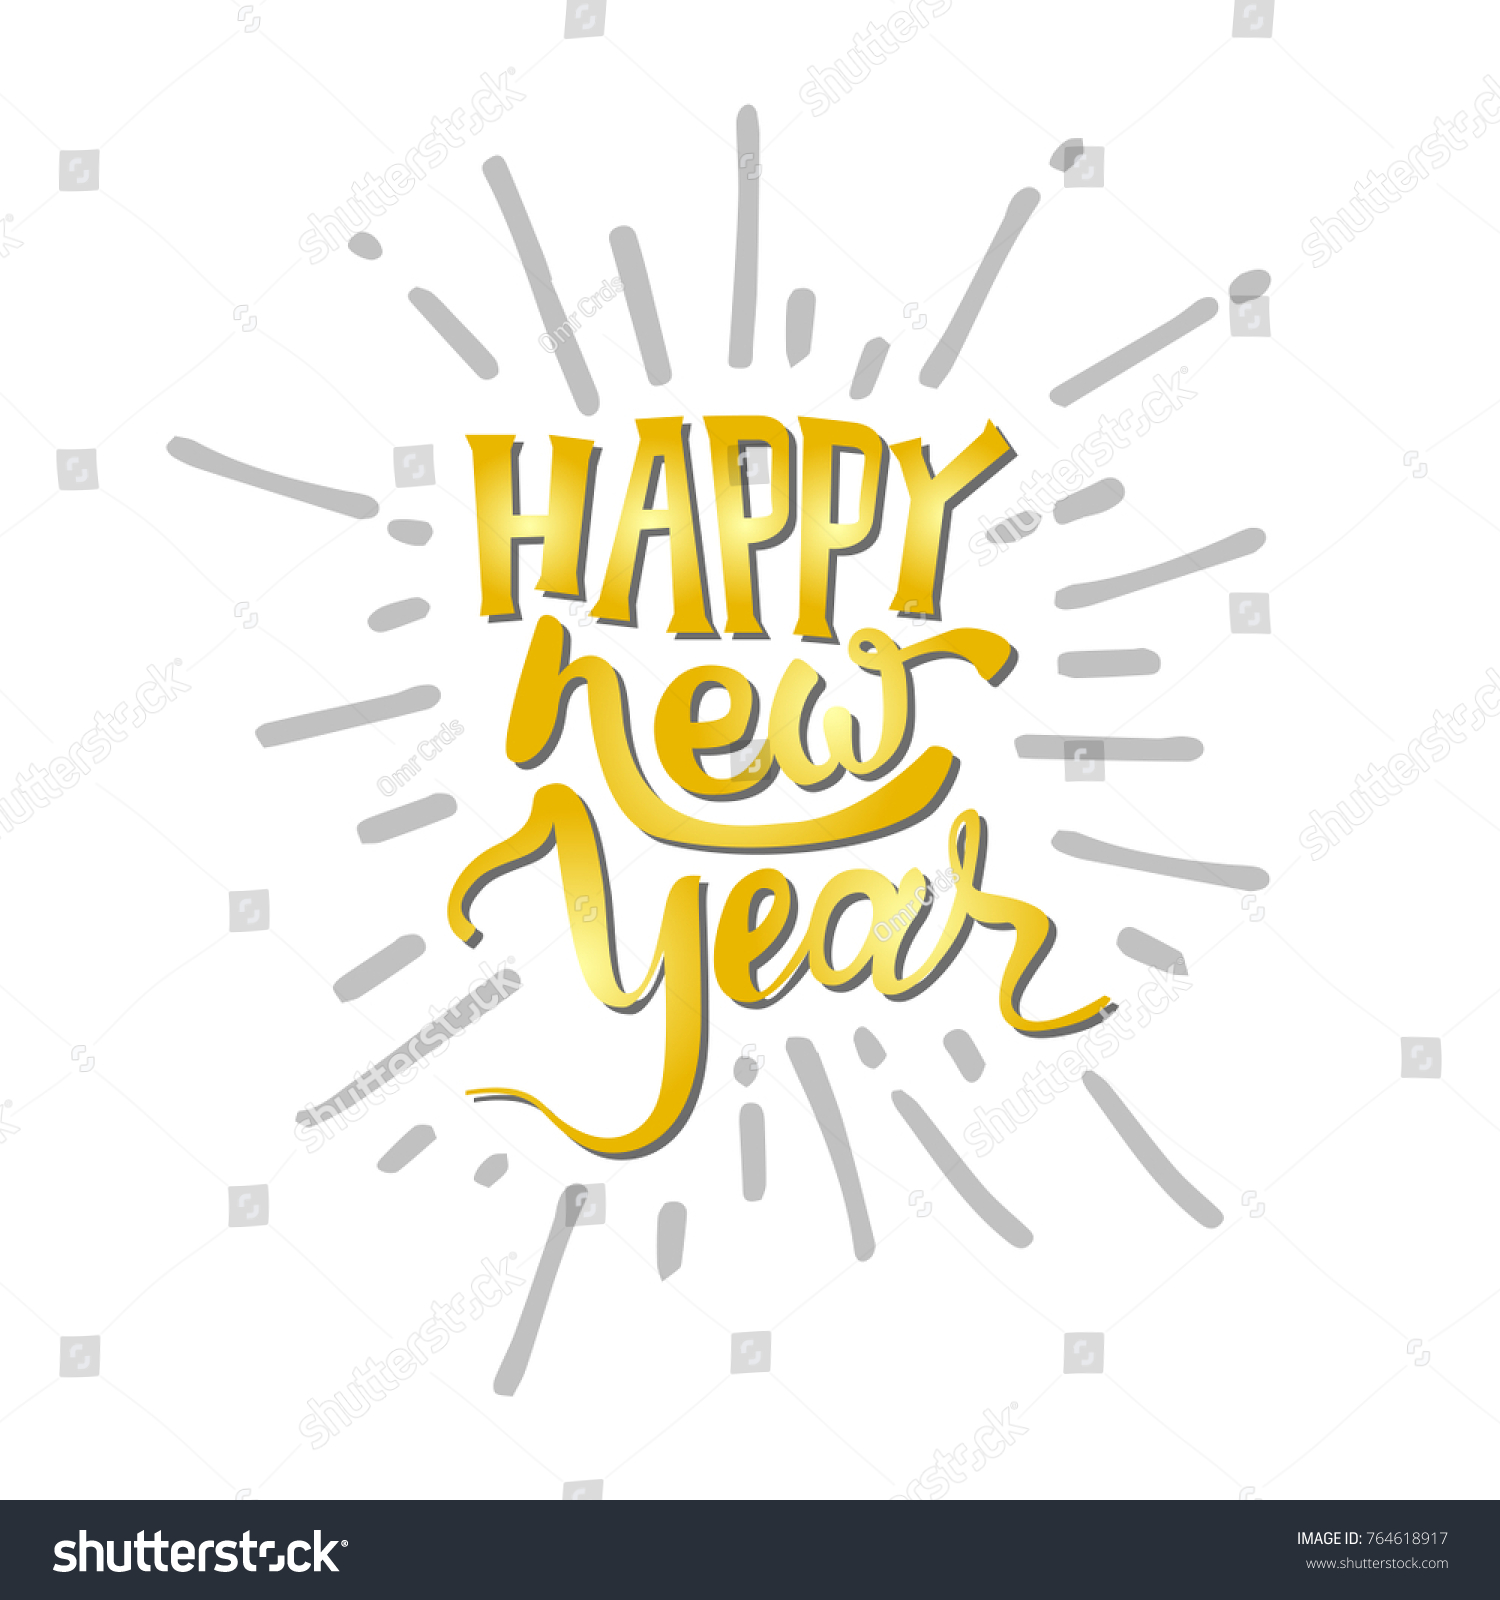 Happy new year text hand drawn stock vector 764618917 shutterstock happy new year text hand drawn lettering holiday greetings quote great for christmas kristyandbryce Images